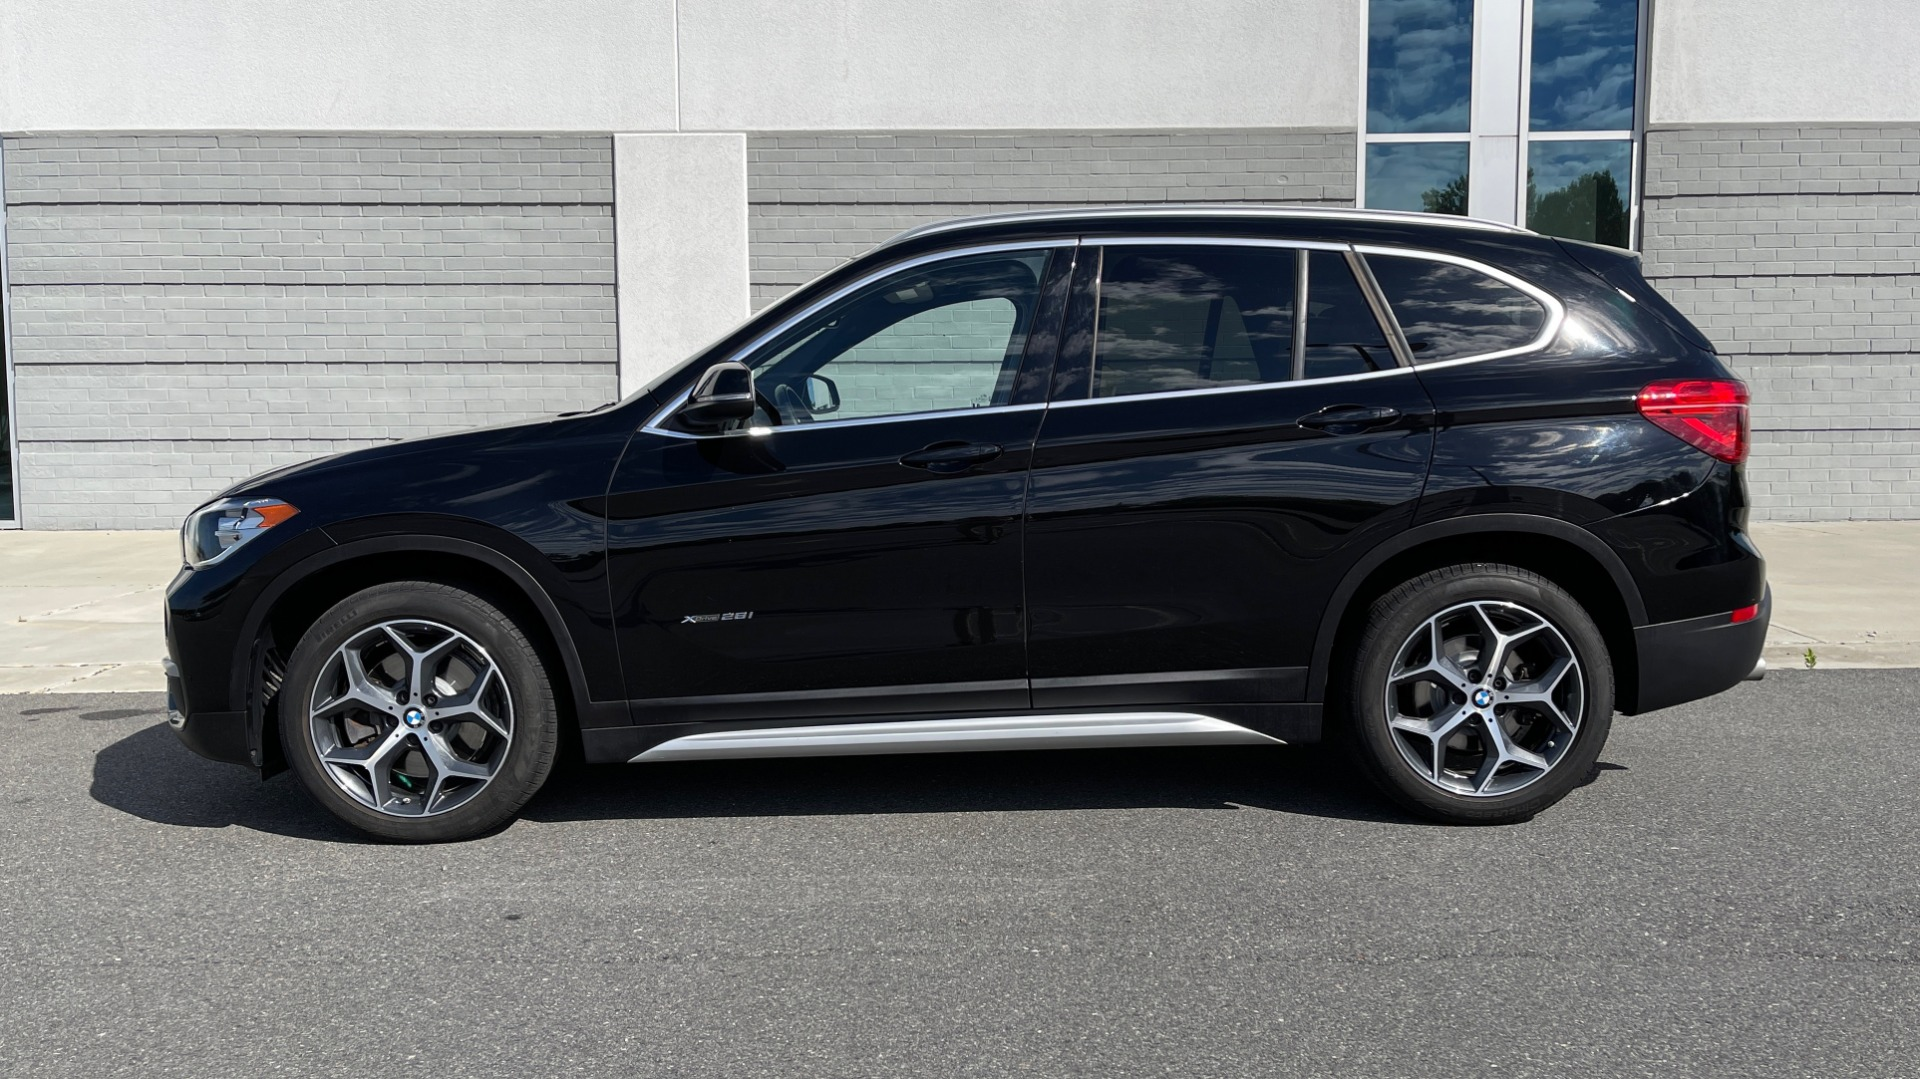 Used 2018 BMW X1 XDRIVE28I / CONV PKG / HTD SEATS / PANO-ROOF / REARVIEW for sale Sold at Formula Imports in Charlotte NC 28227 4